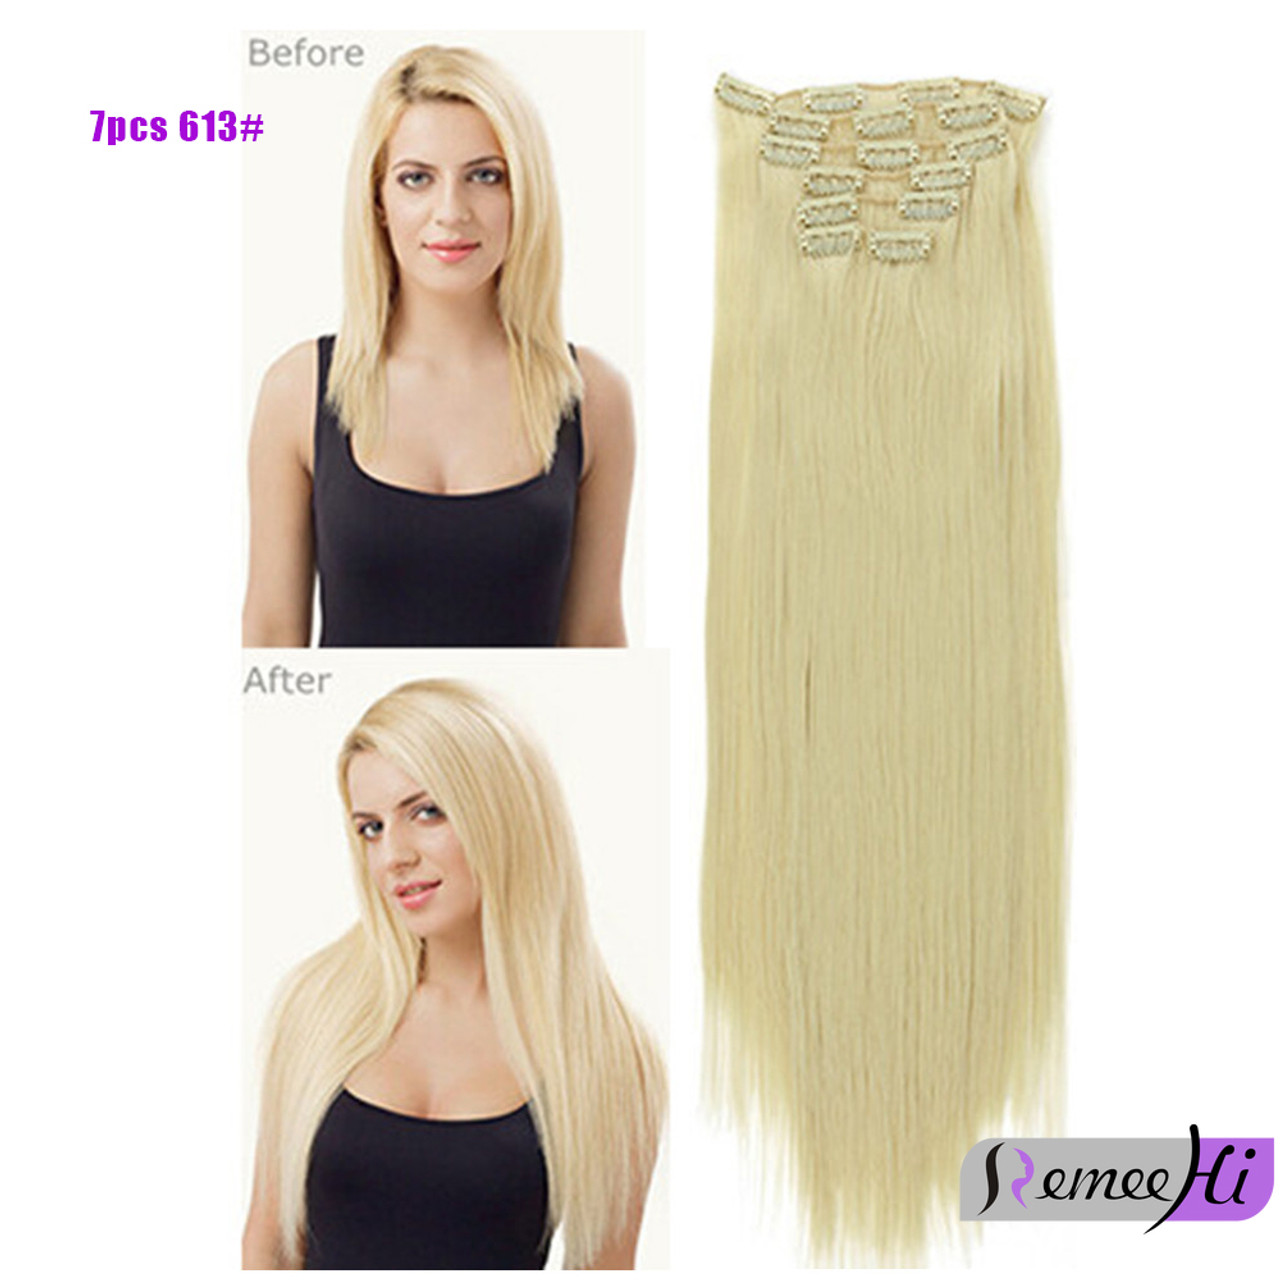 23-colors-1PC-Clip-In-Synthetic-Hair-Extensions -Straight-7pcs-set-Natural-Hairpiece-Clip-On -Top  56953.1473478149.jpg c 2 imbypass on 0cc749624